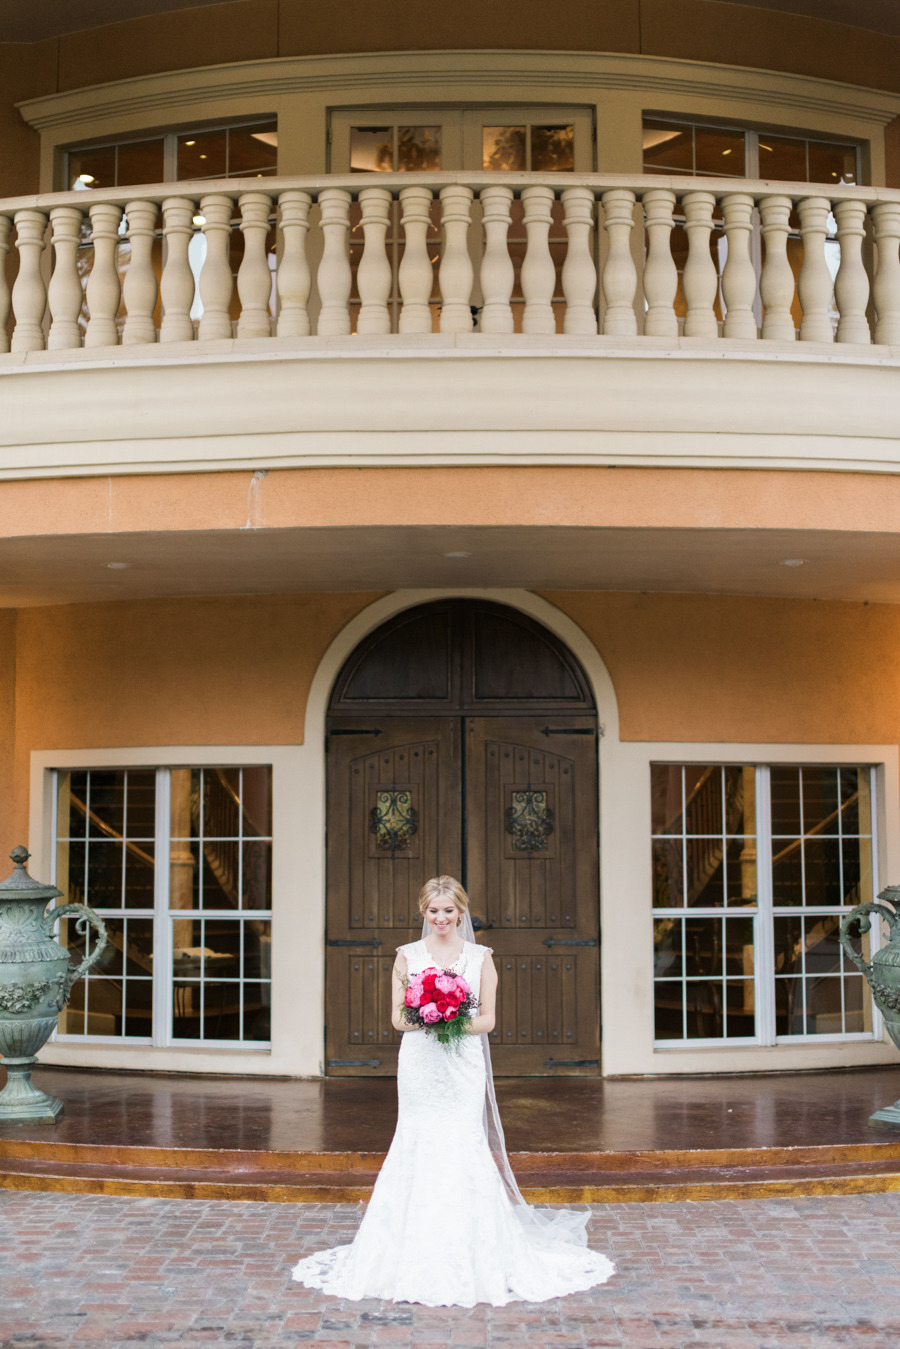 Dana Fernandez Photography Houston Wedding Photographer Chateau Polonez Destination Film Texas-4.jpg